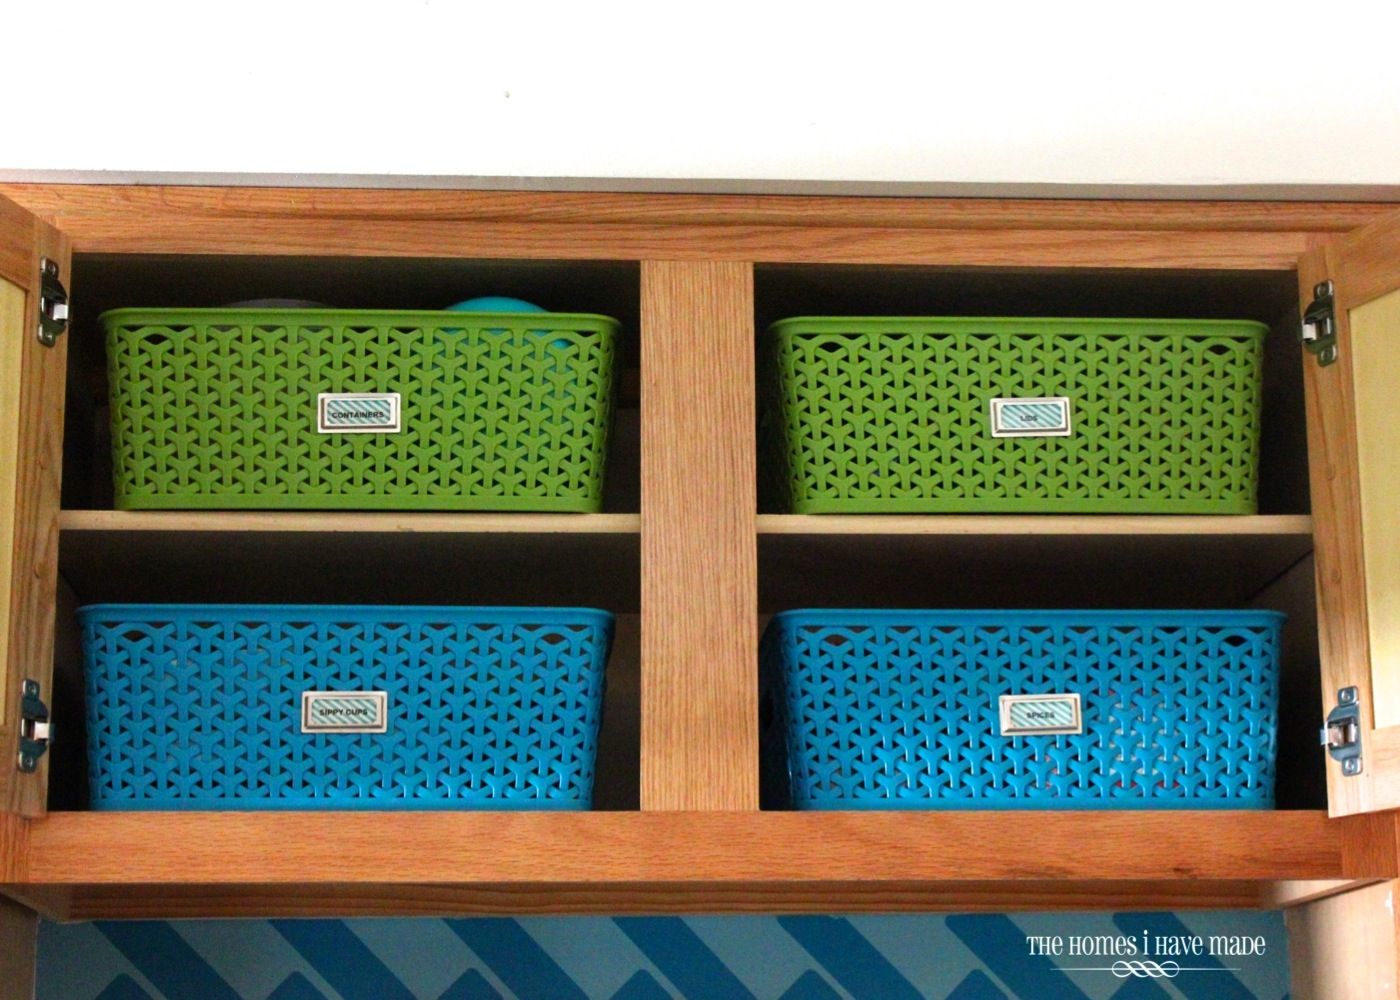 Kitchen Cabinet Organizer Ideas Storage Ideas For Little Upper Cabinets The Homes I Have Made